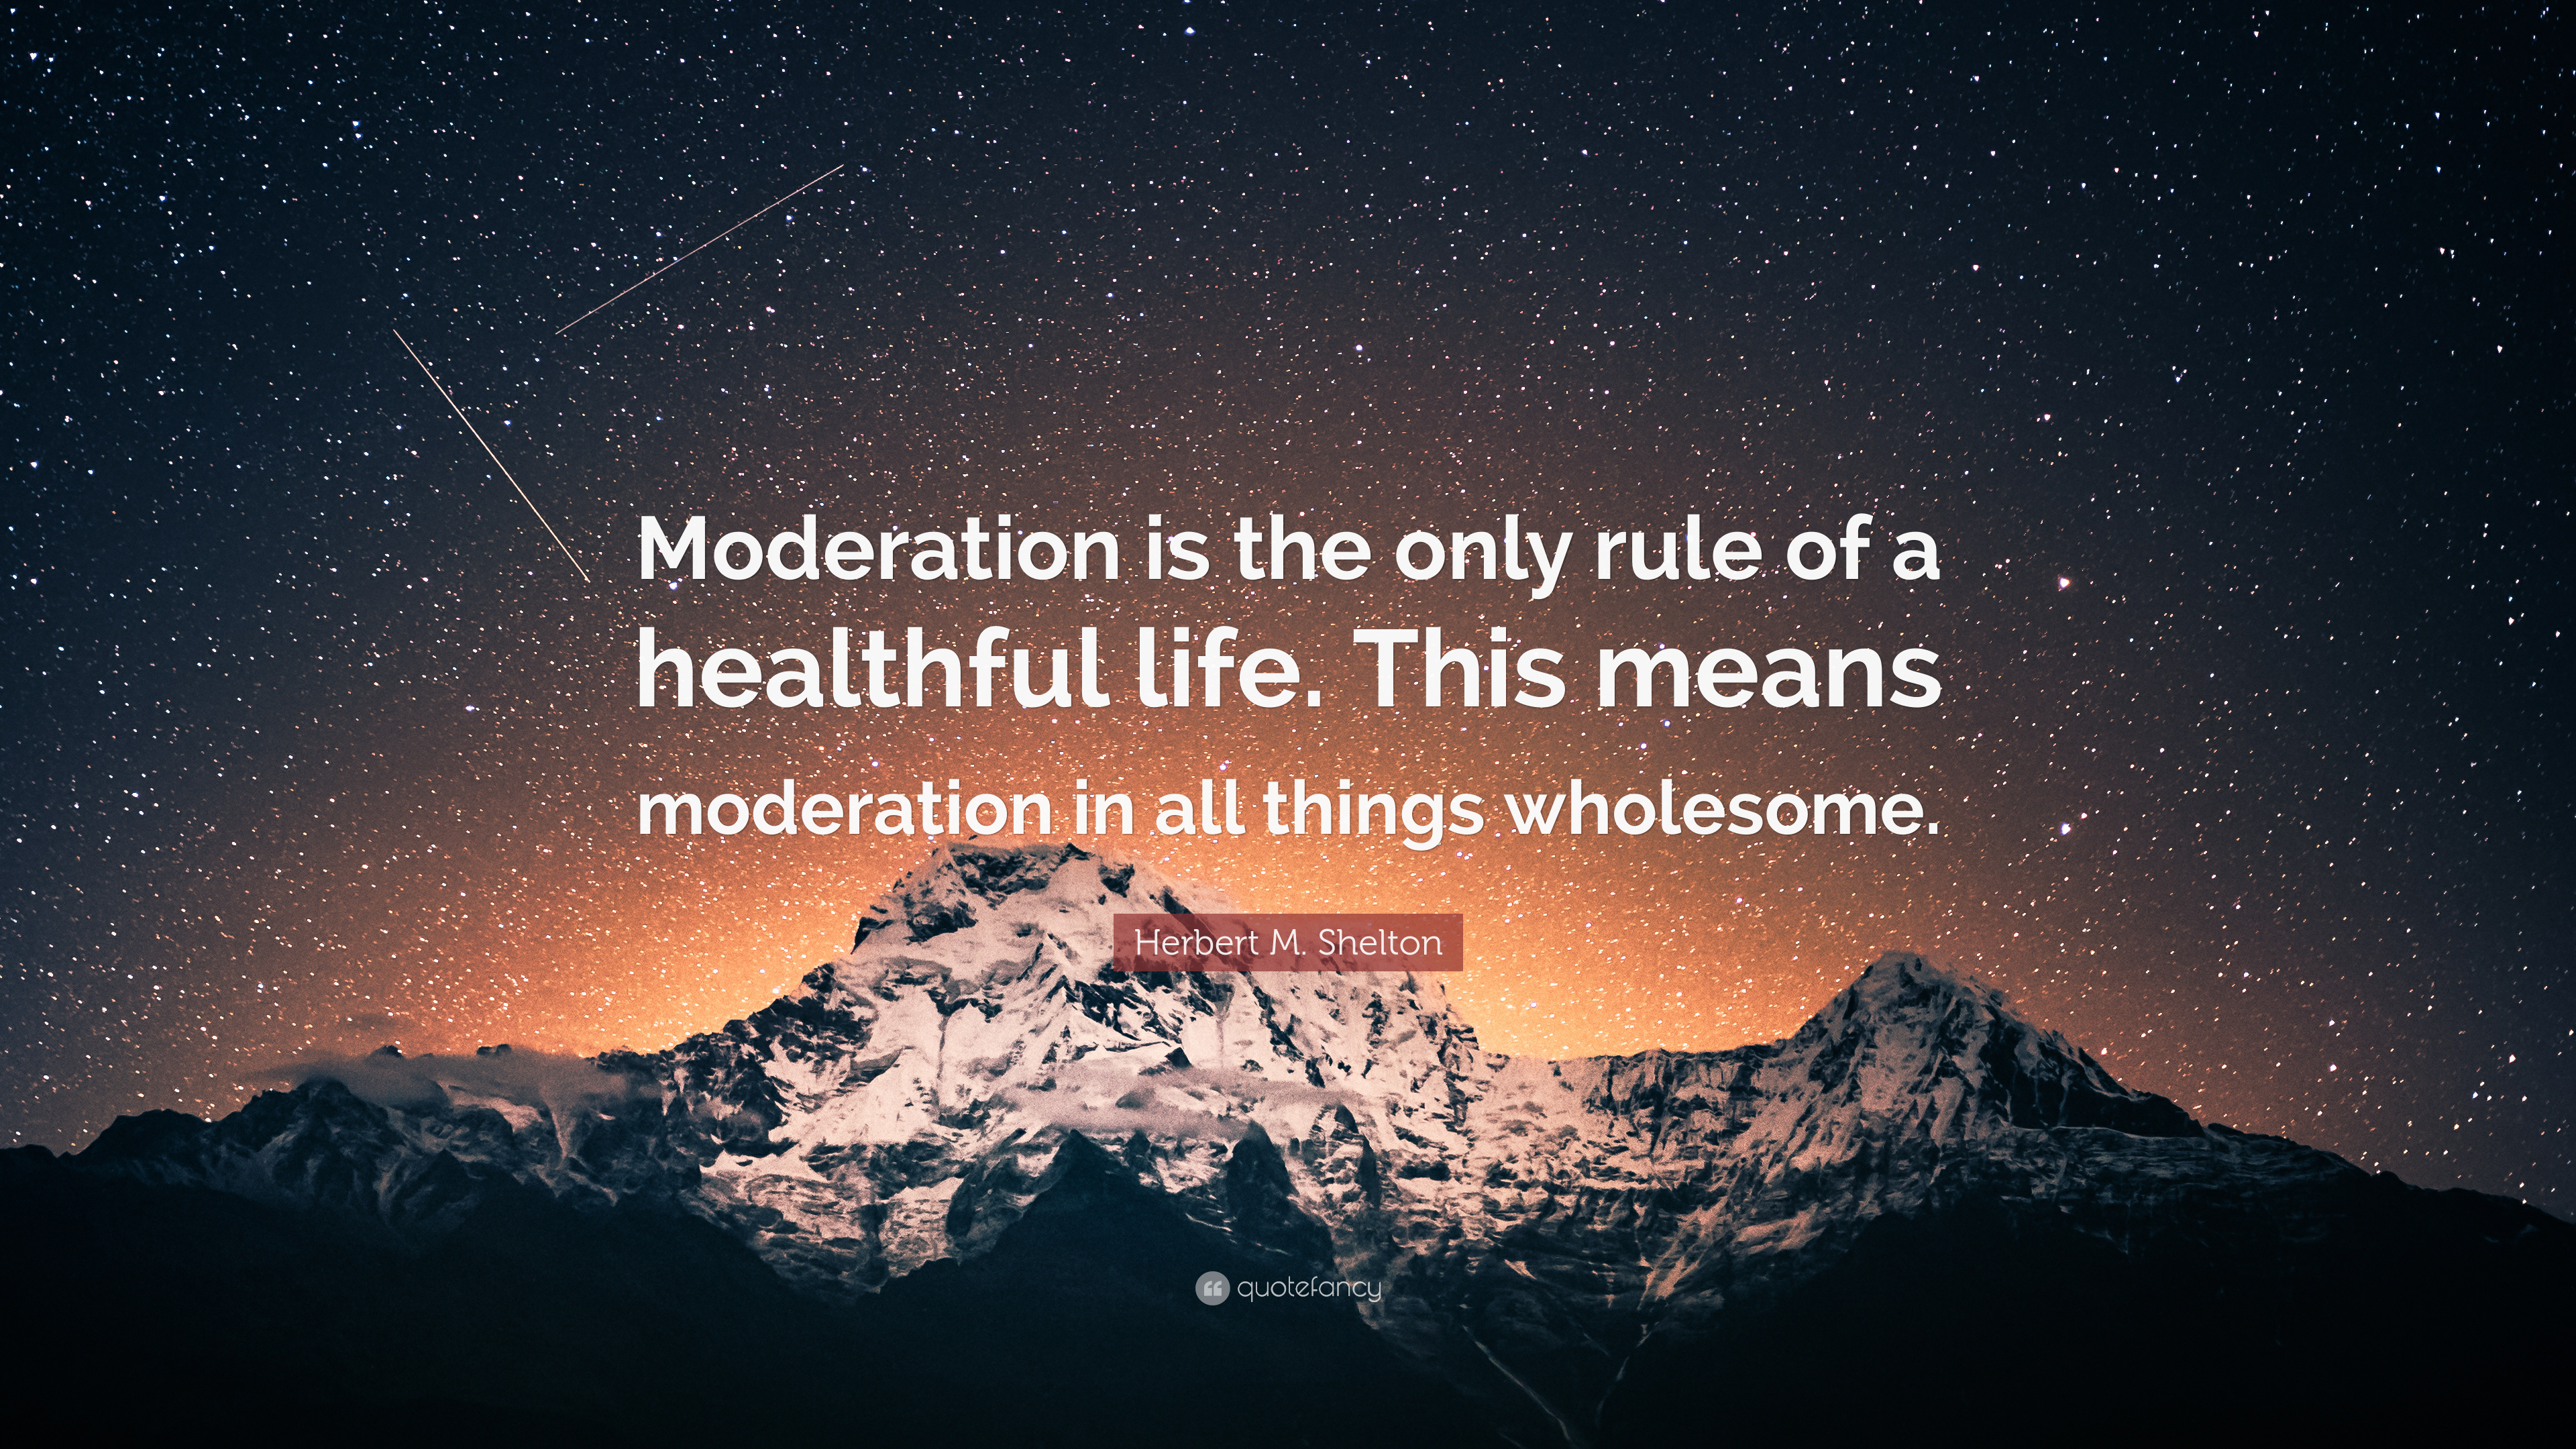 lao tzu the moderation of rule Lao tzu (c 604-531 bce) was a legendary chinese sage whose collection of verses, the tao te ching, is the basis of taoism this passage is published in easwaran's spiritual anthologies, god makes the rivers to flow and timeless wisdom.